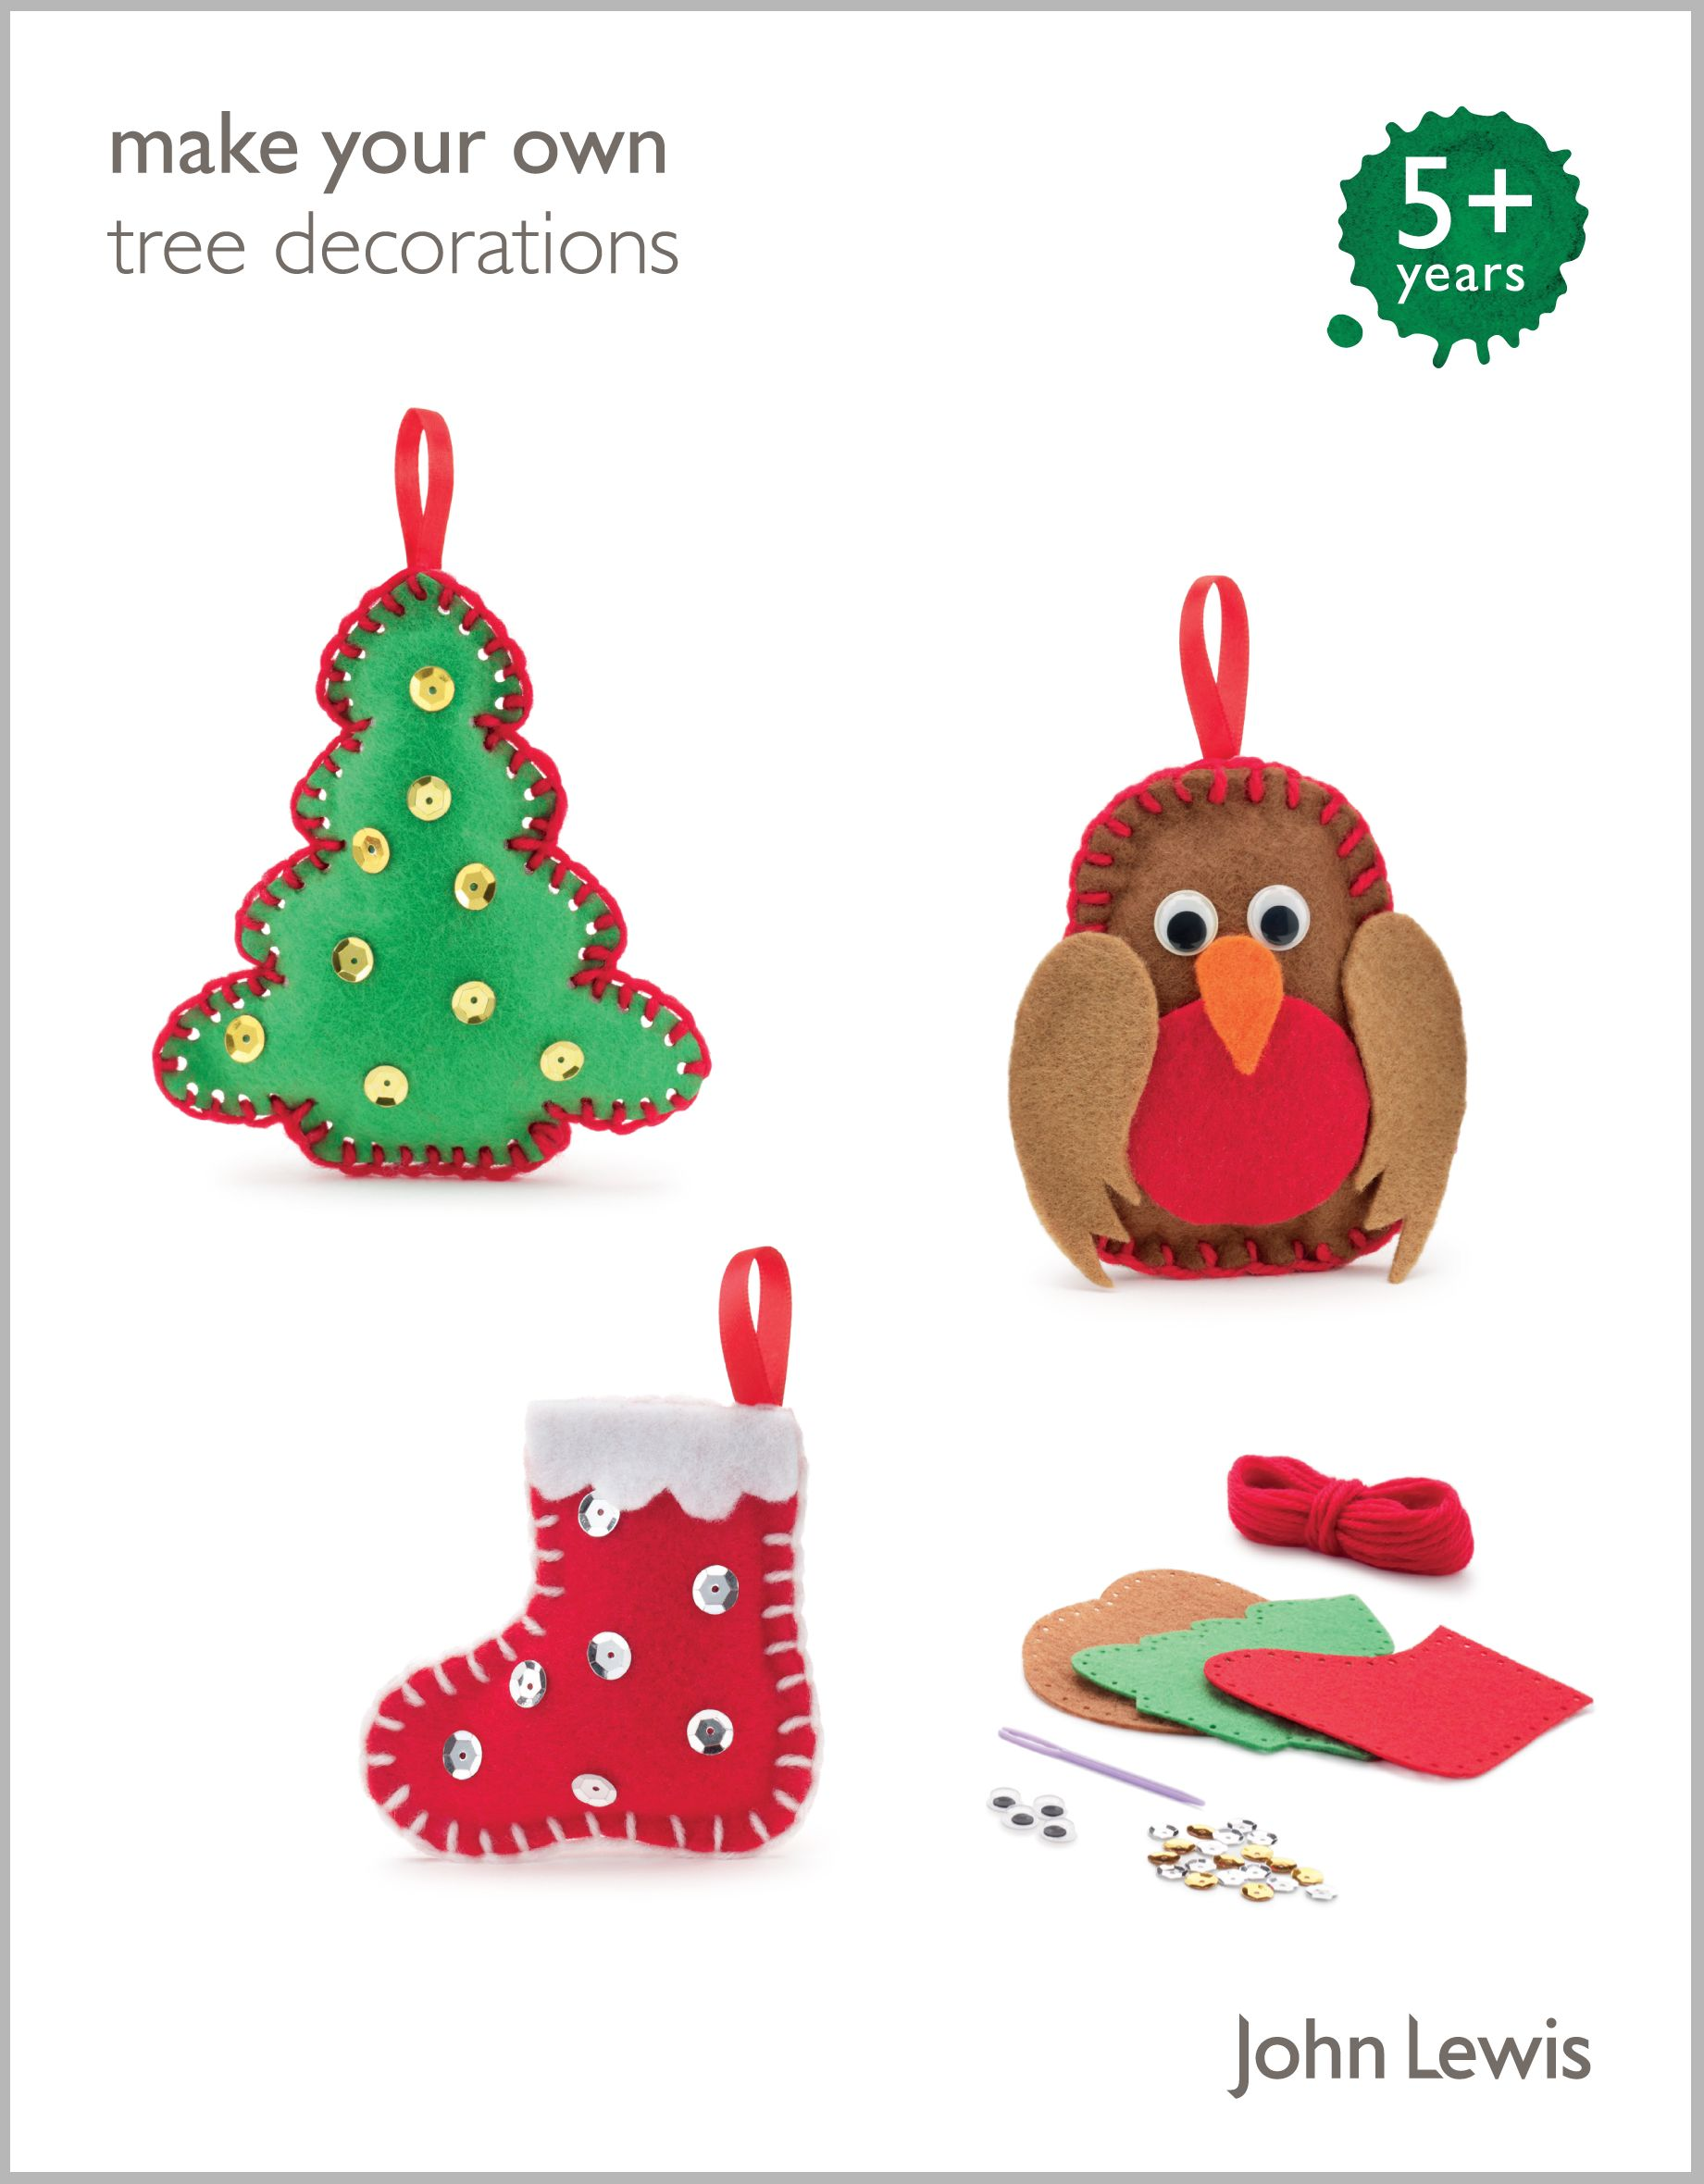 Buy cheap Christmas stocking kit pare products prices